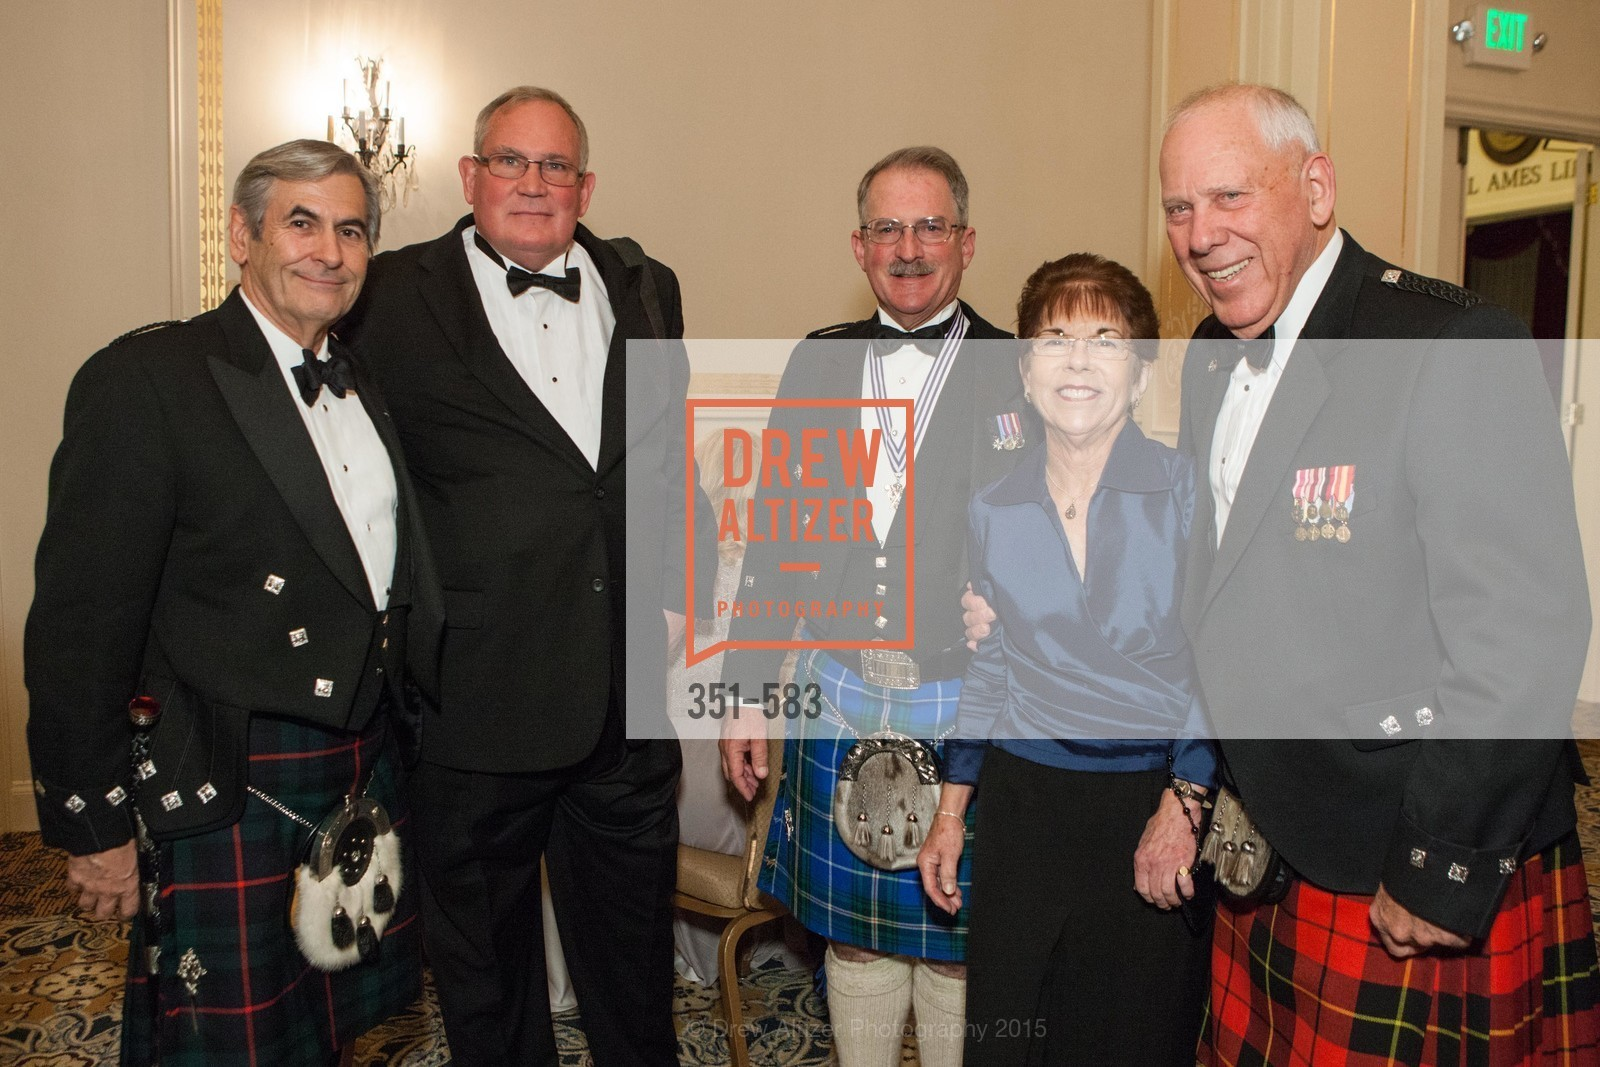 Don McCorkindale, William Childress, Fred Rutledge, Anne Zucchi, Russ Wallace, St. Andrew's Society of San Francisco Annual Banquet and Ball 2015, Marines' Memorial Club & Hotel. 609 Sutter St, November 28th, 2015,Drew Altizer, Drew Altizer Photography, full-service agency, private events, San Francisco photographer, photographer california